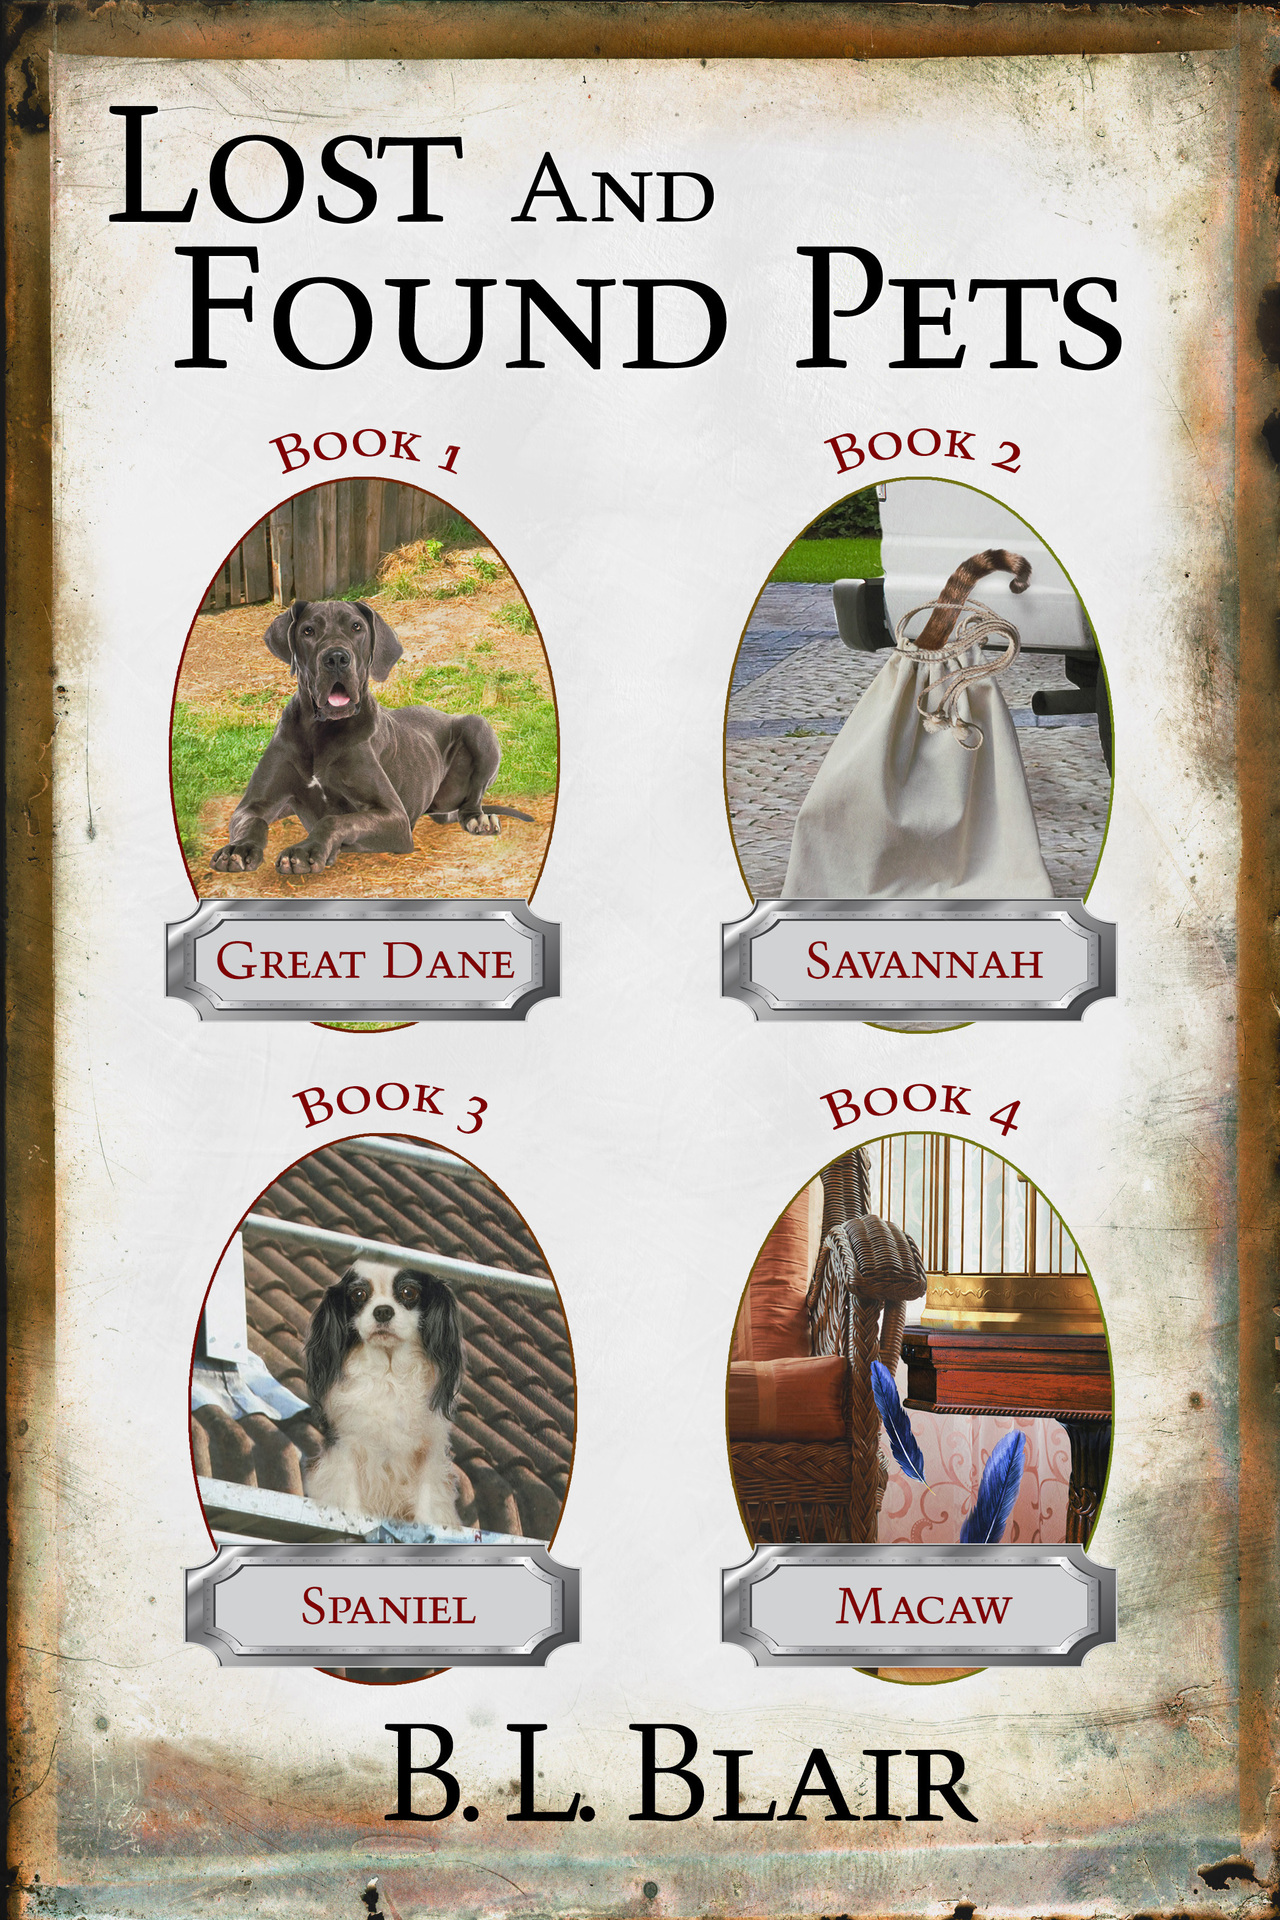 Lost and found pets box set front